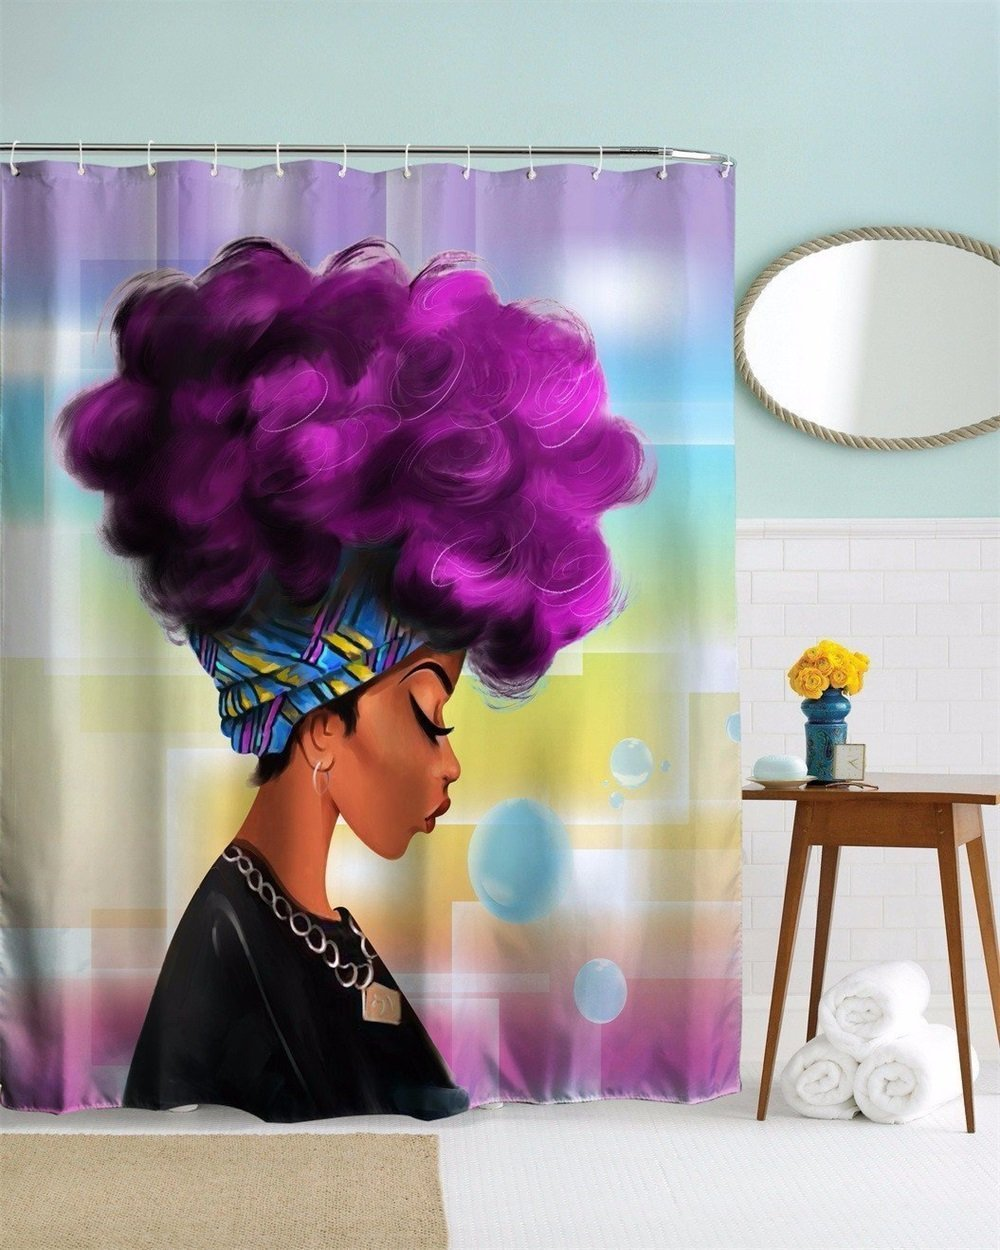 amazoncom afro sexy lady purple hair african girl shower curtains mildew resistant waterroof polyester fabric shower curtain ecofriendly